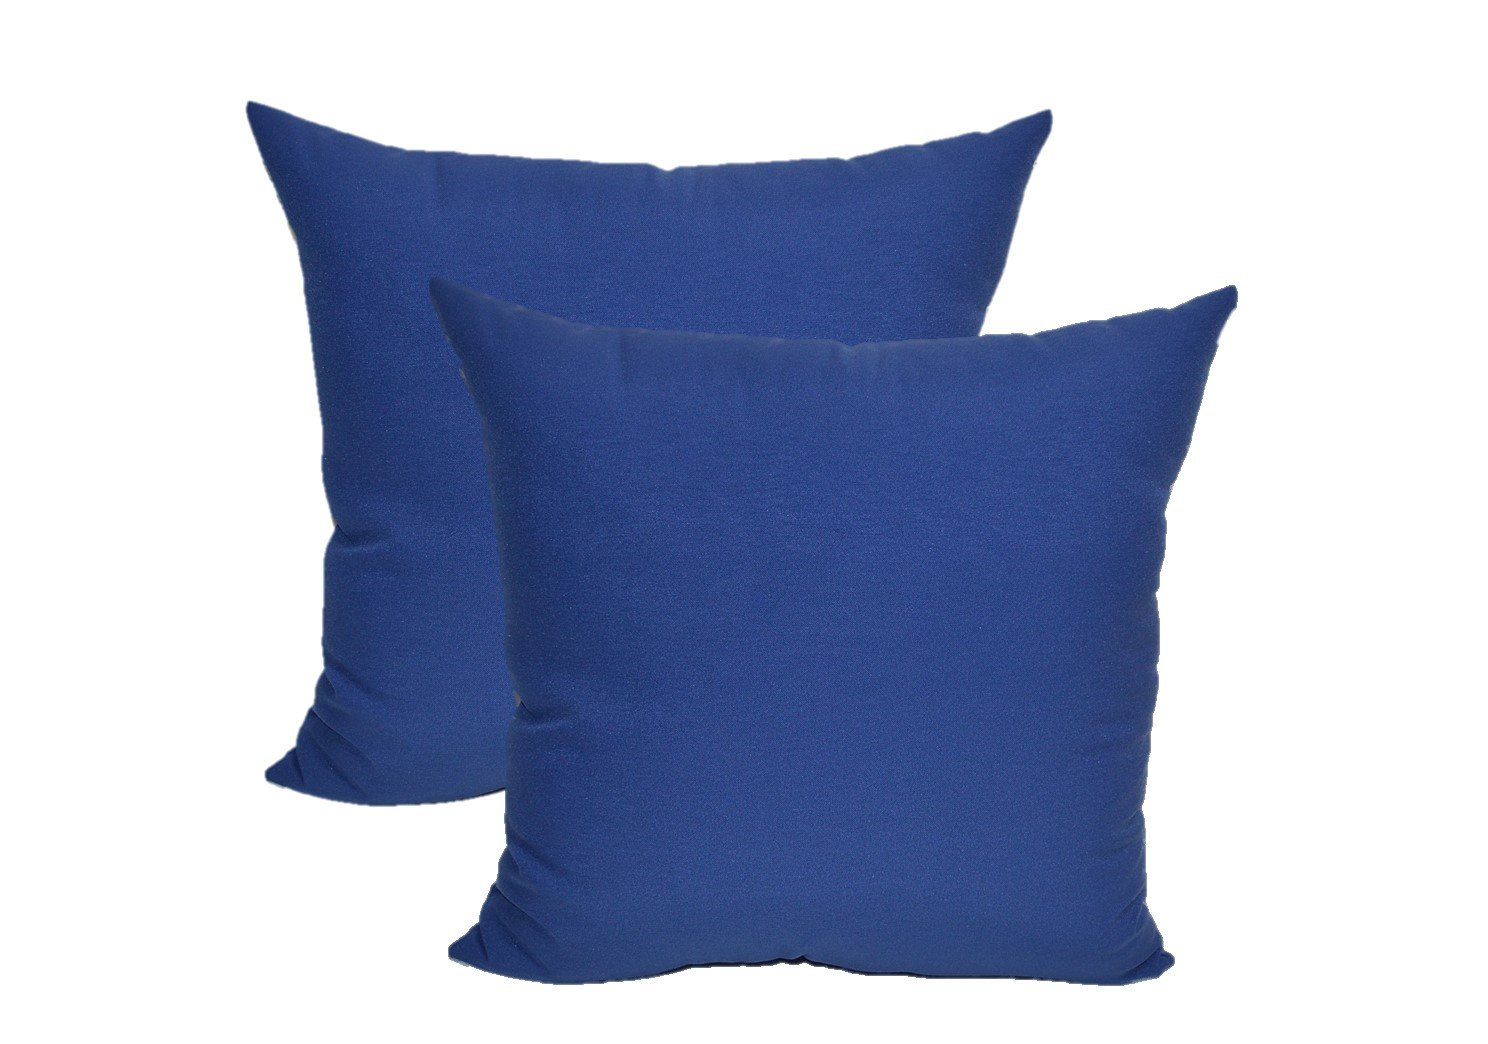 Set of 2 - Indoor / Outdoor Decorative Square Throw / Toss Pillows - Solid Royal / Admiral Blue - Choose Size (20'')